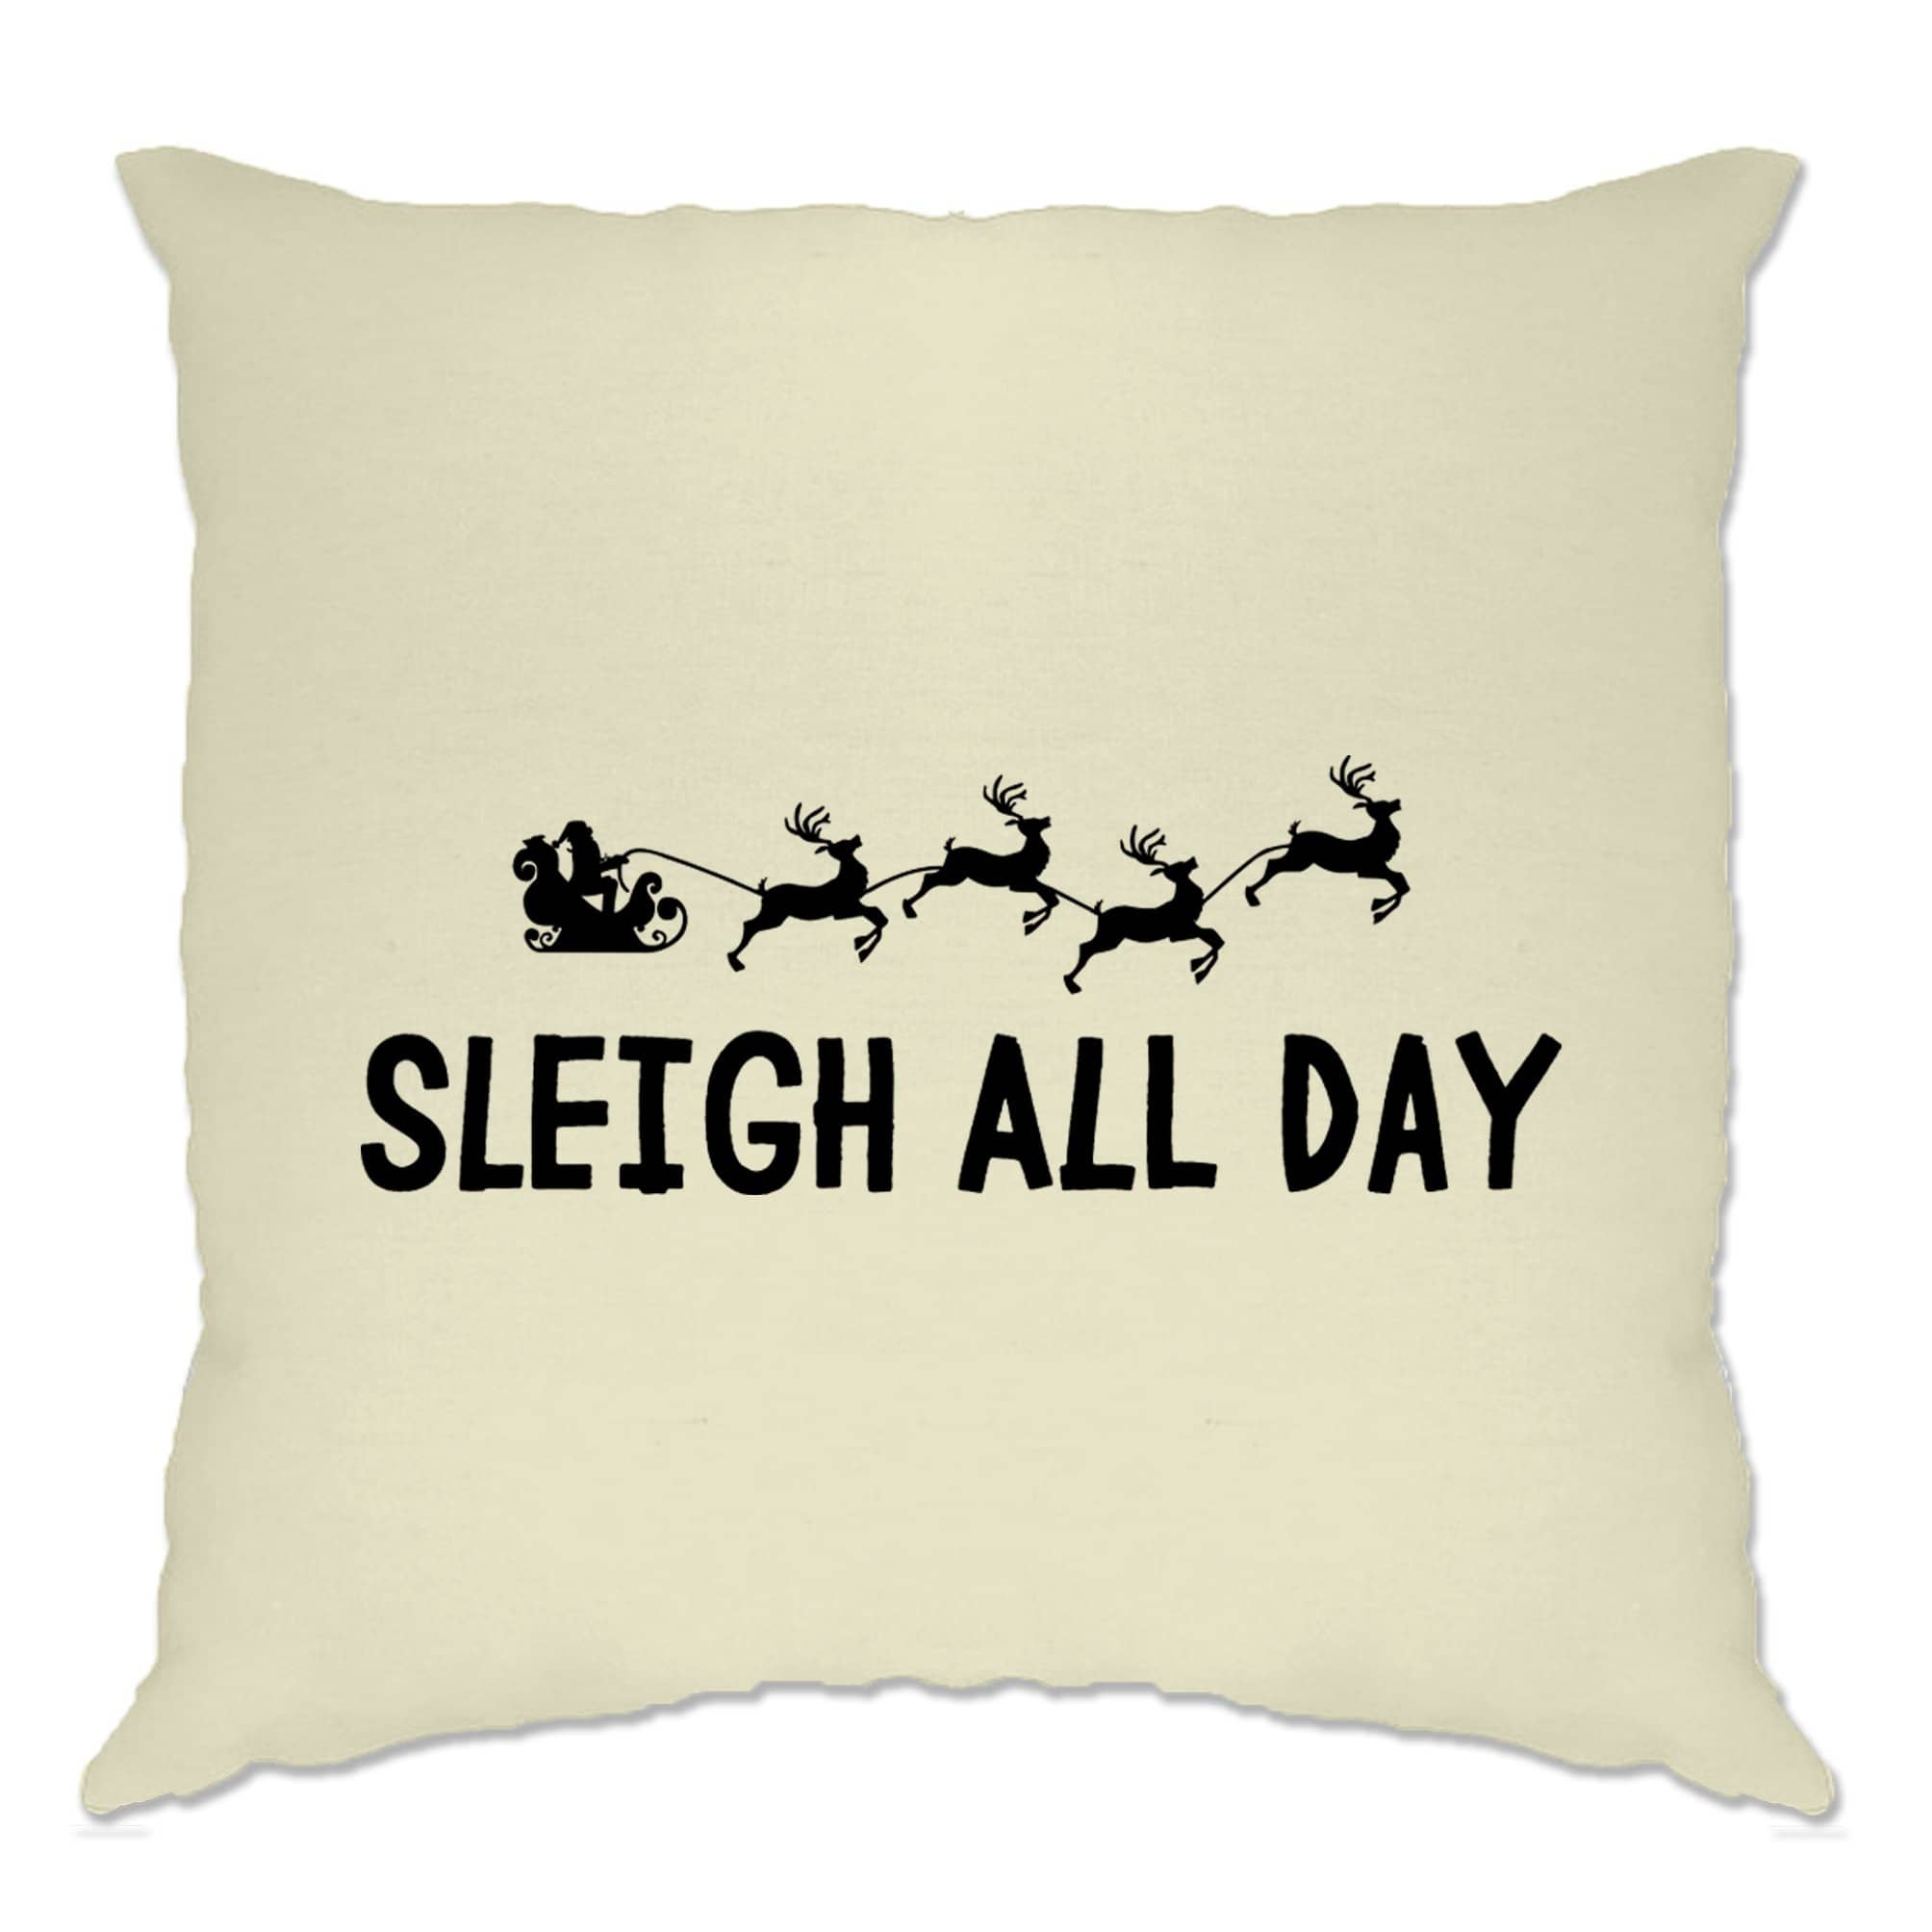 Joke Christmas Cushion Cover Sleigh Slay All Day Pun Novelty